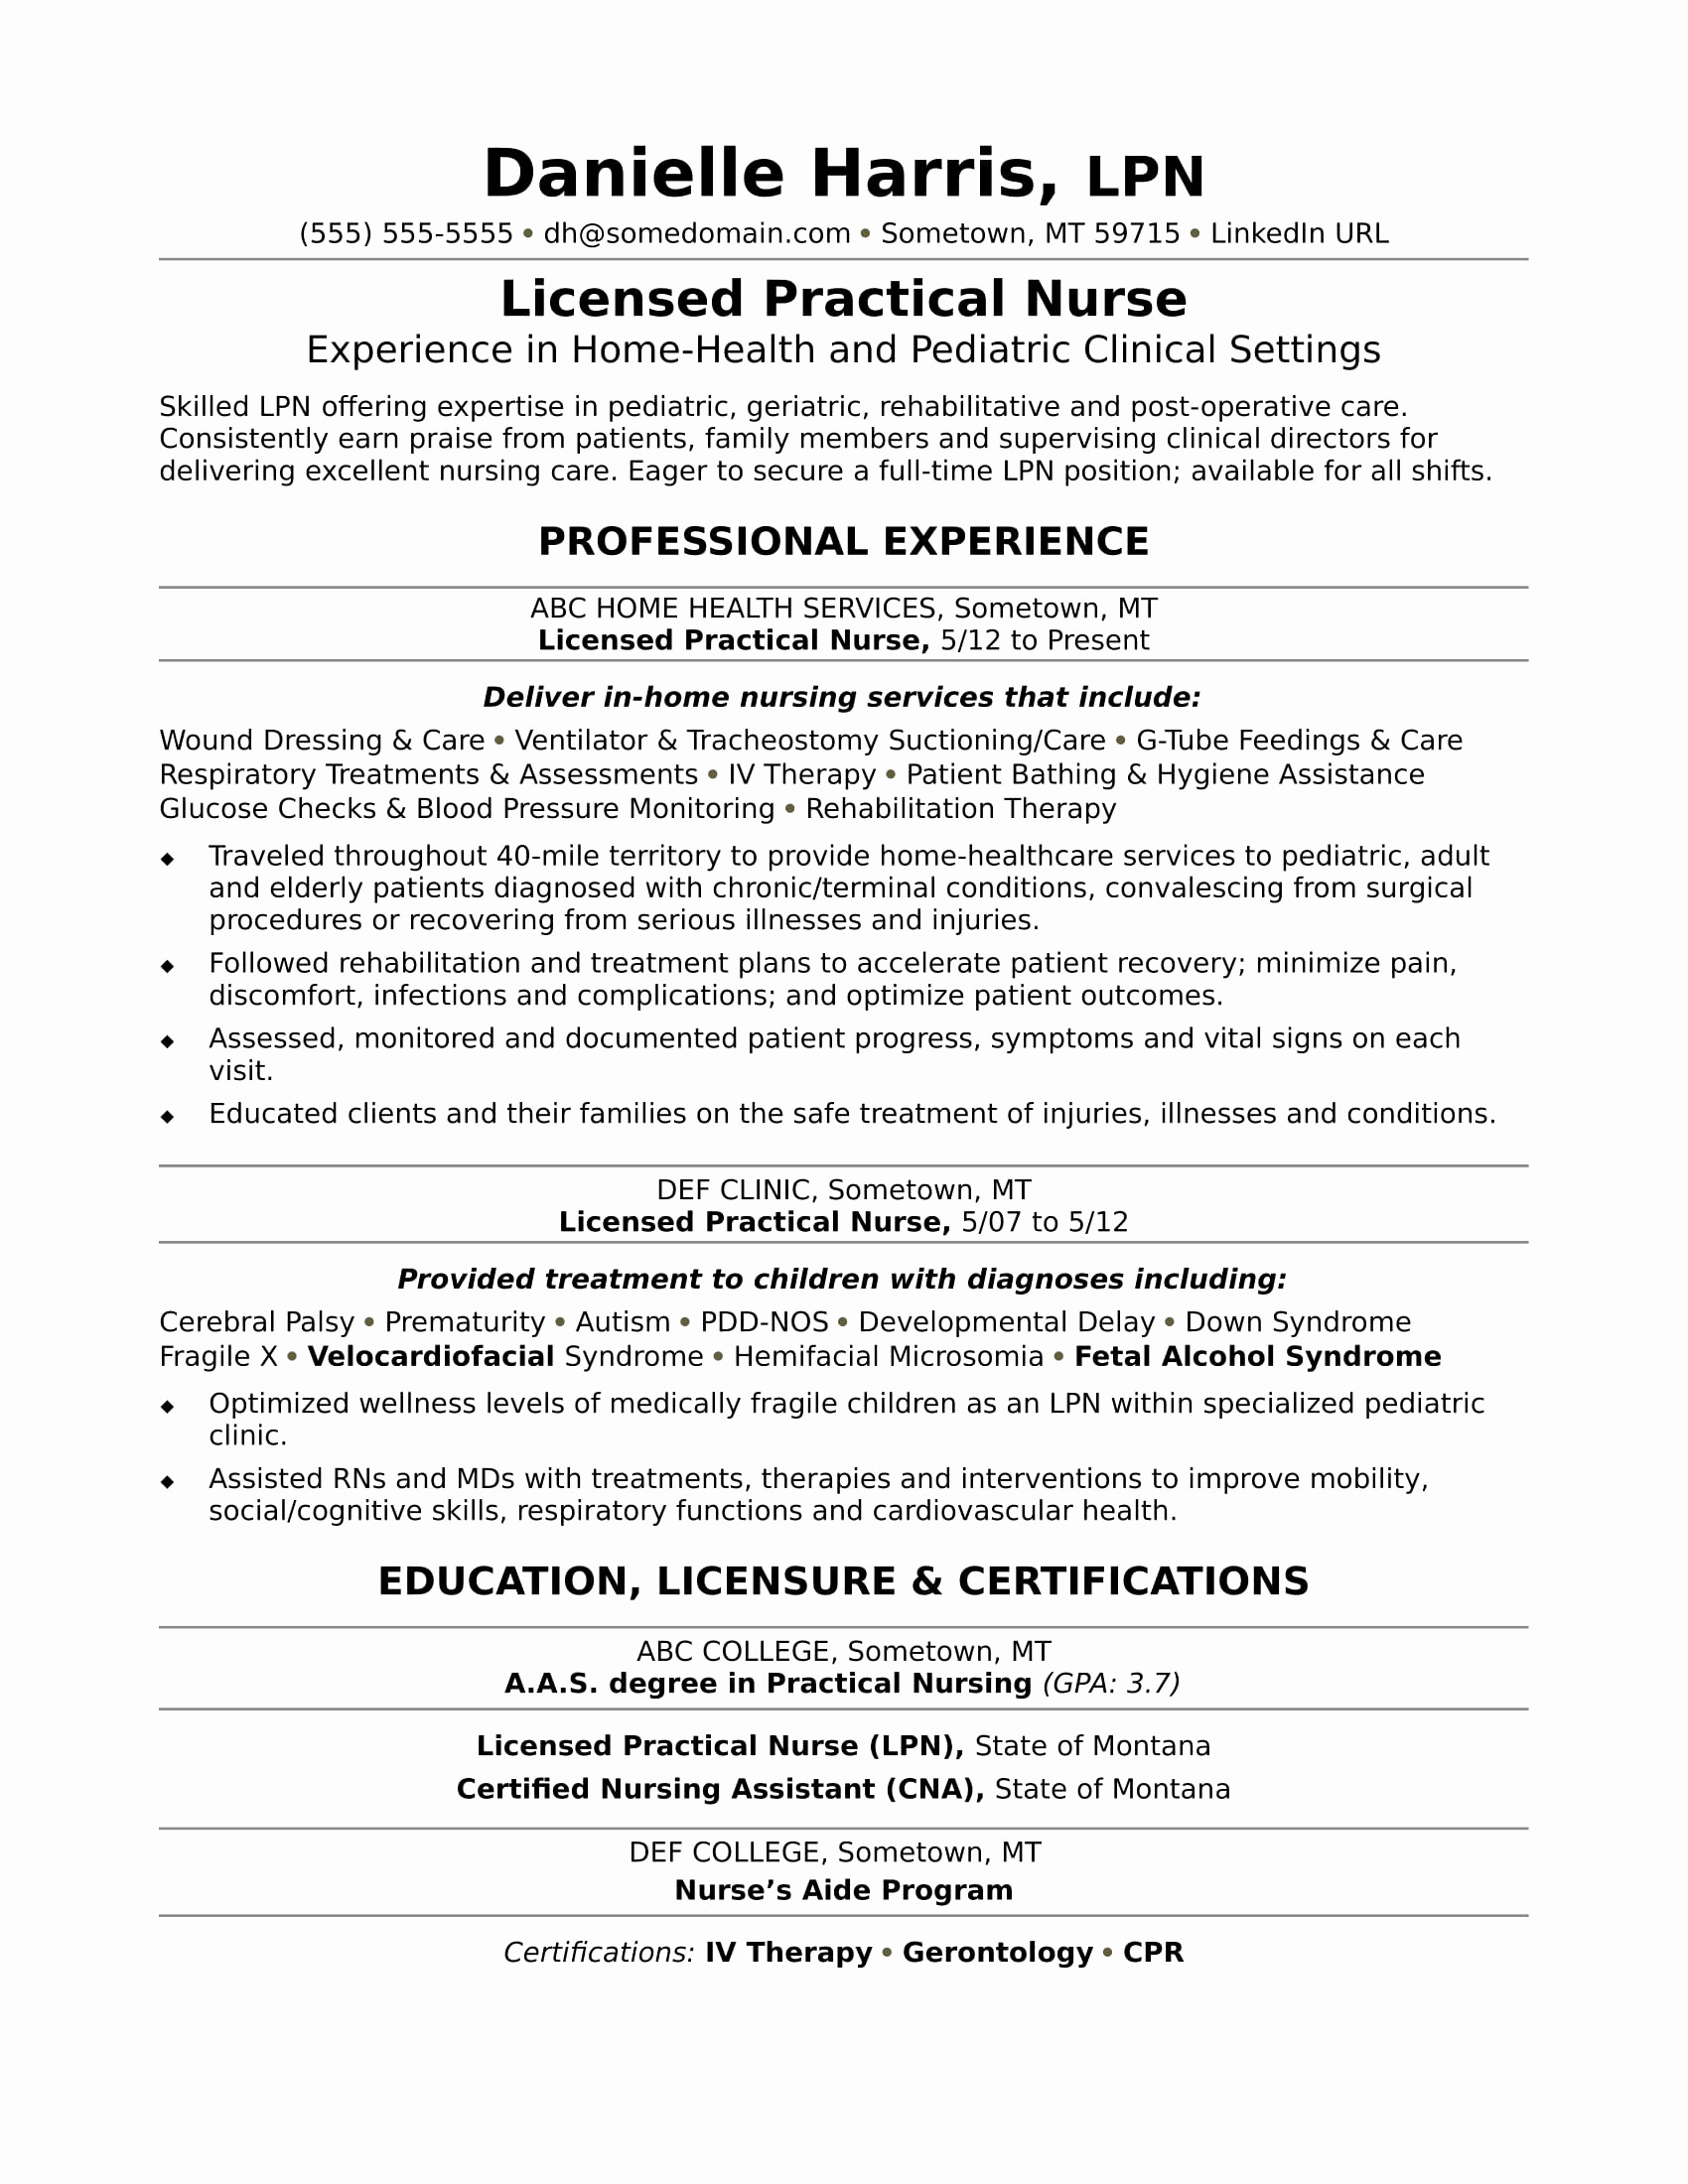 Massage therapist Resume Sample - Resume for Massage therapy – Legacylendinggroup